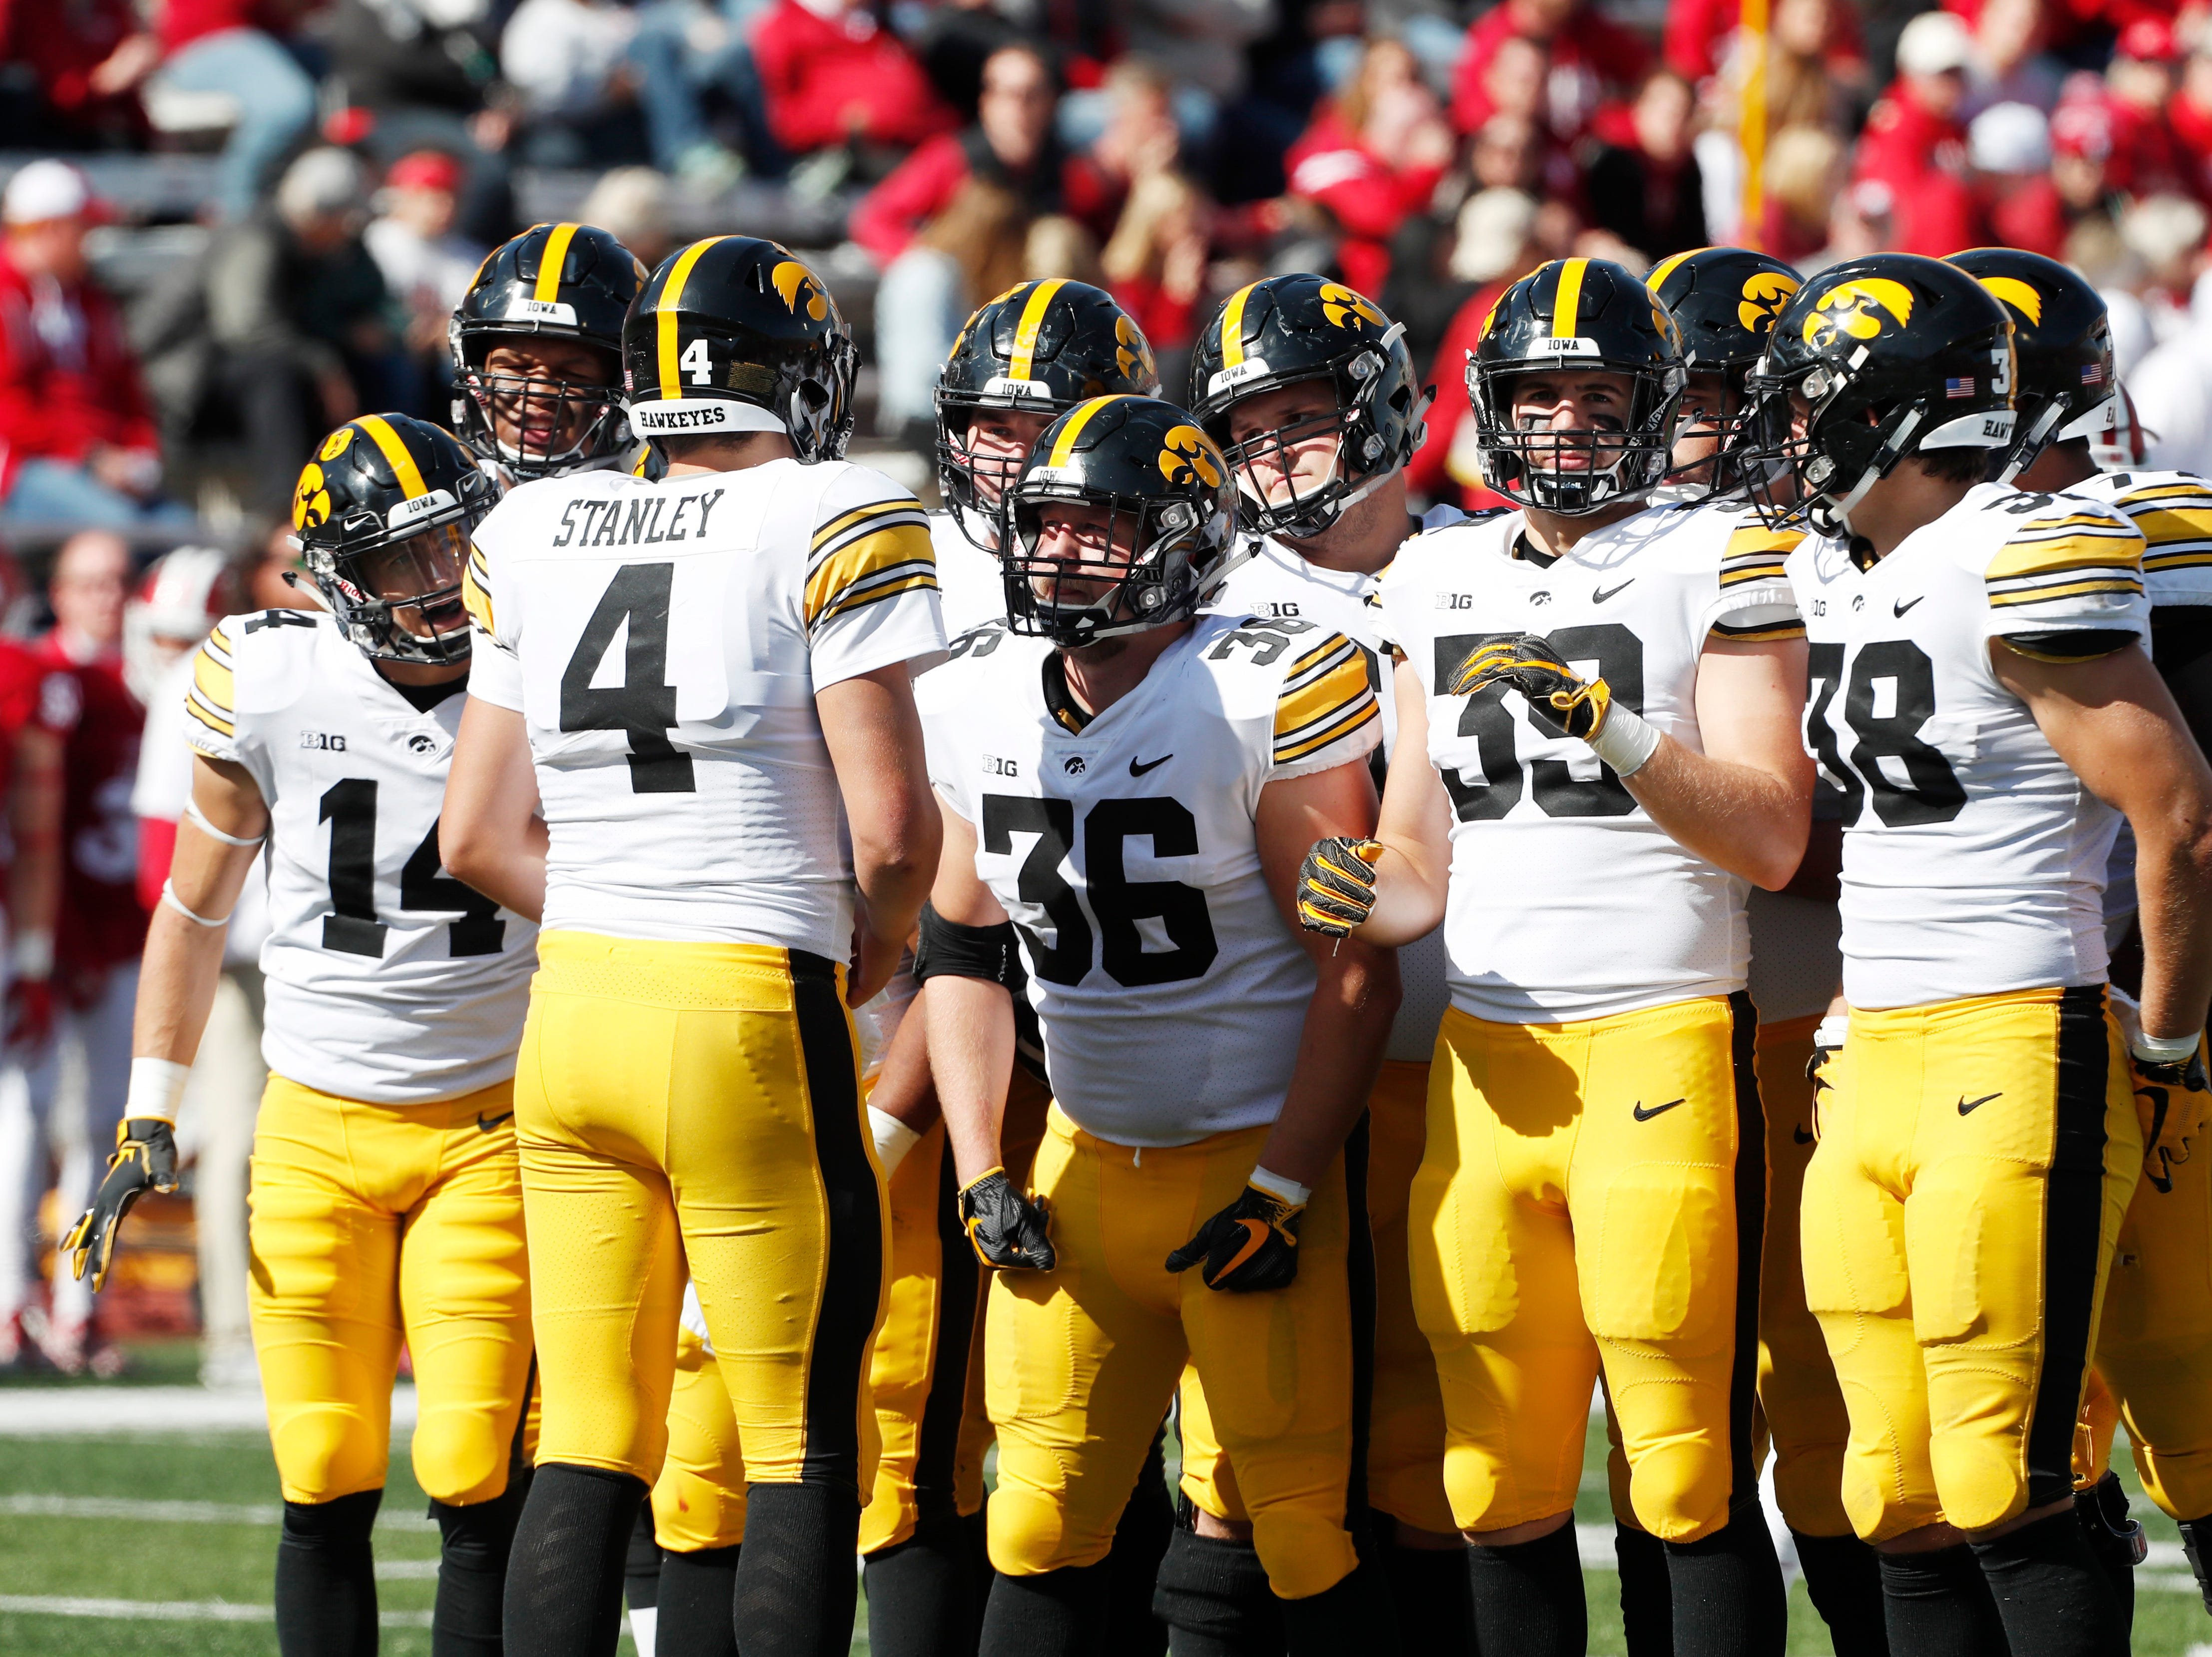 Iowa Hawkeyes quarterback Nate Stanley (4) huddles up with his team against the Indiana Hoosiers during the fourth quarter at Memorial Stadium.